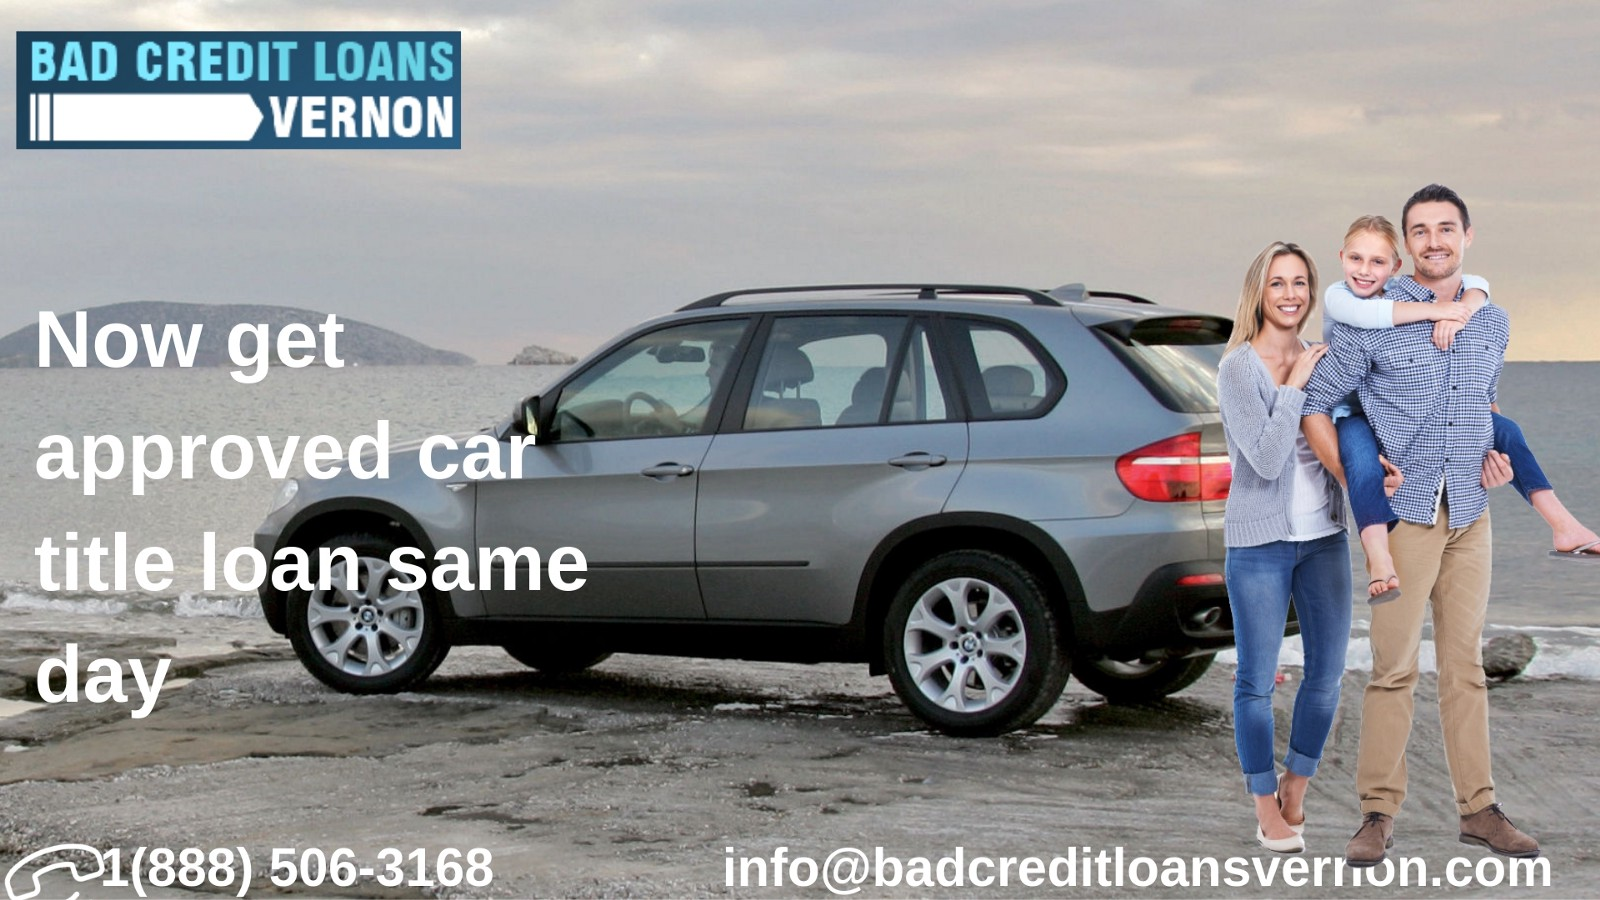 Who Gives The Best Bad Credit Car Loan In Vernon Bad Credit Loans